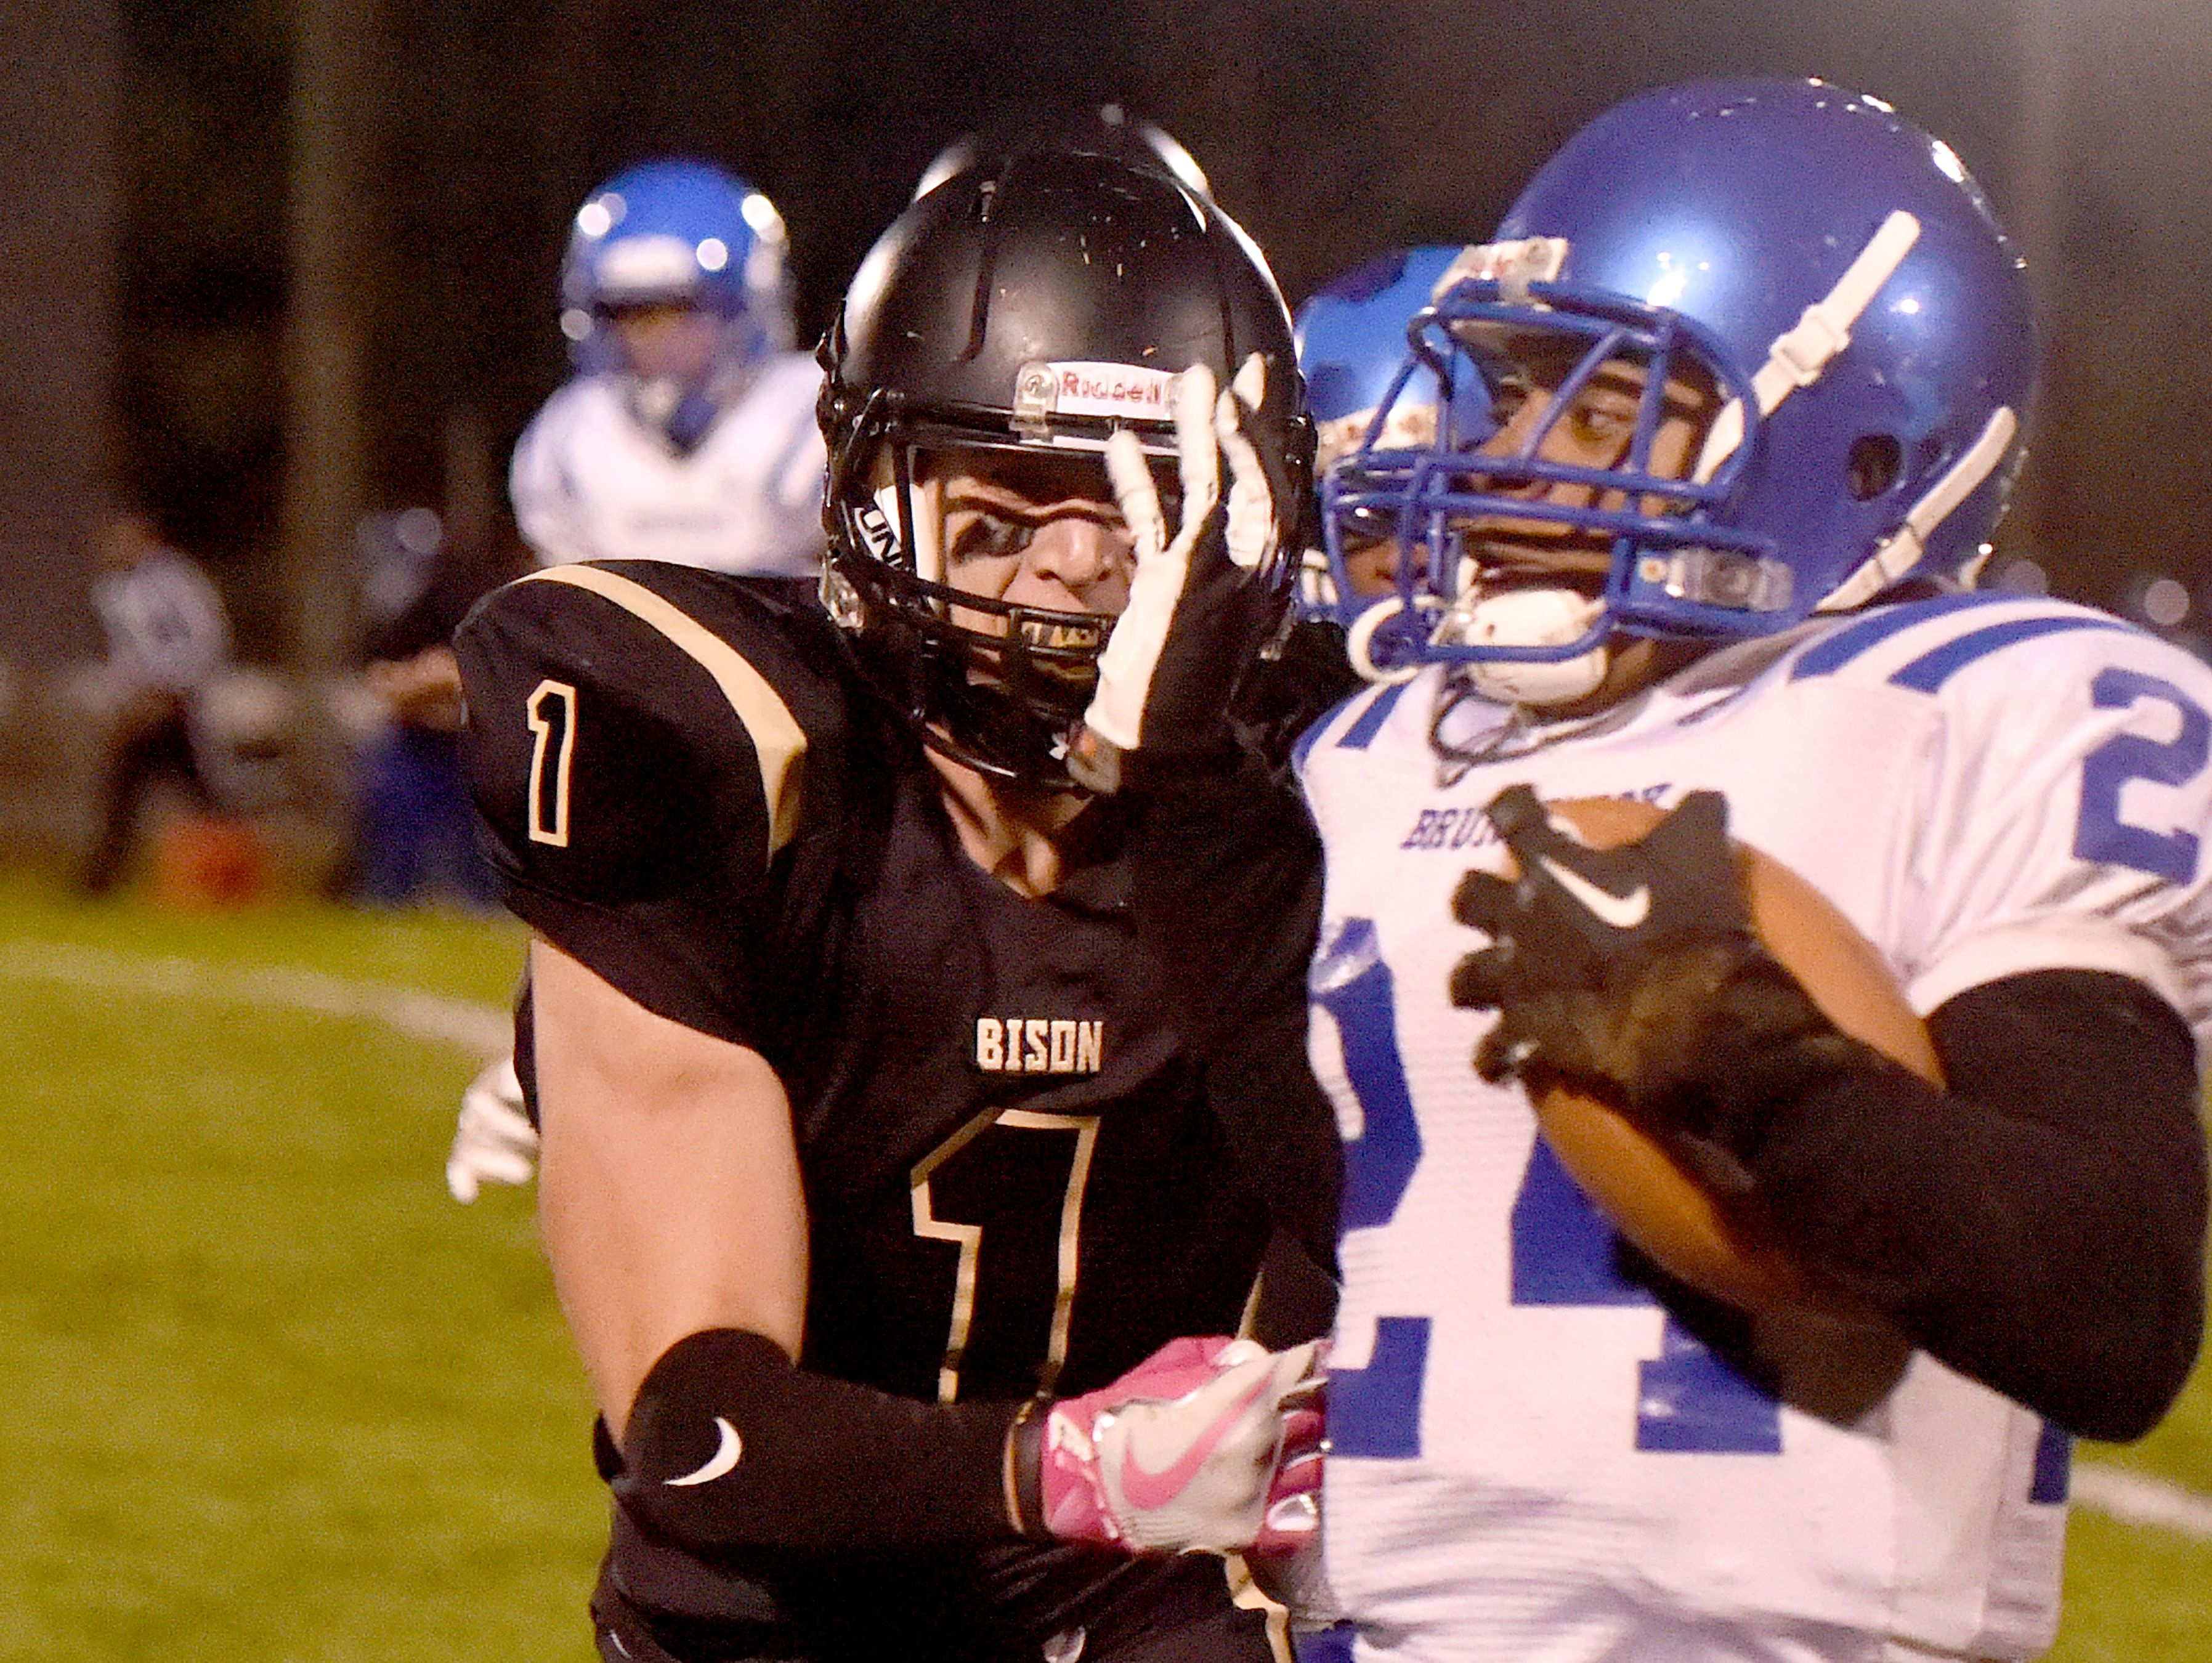 Buffalo Gap's Jake Shelton looks to wrap up Brunswick ball carrier Ahdarius Jackson during a football game played in Swoope on Oct. 27, 2016.